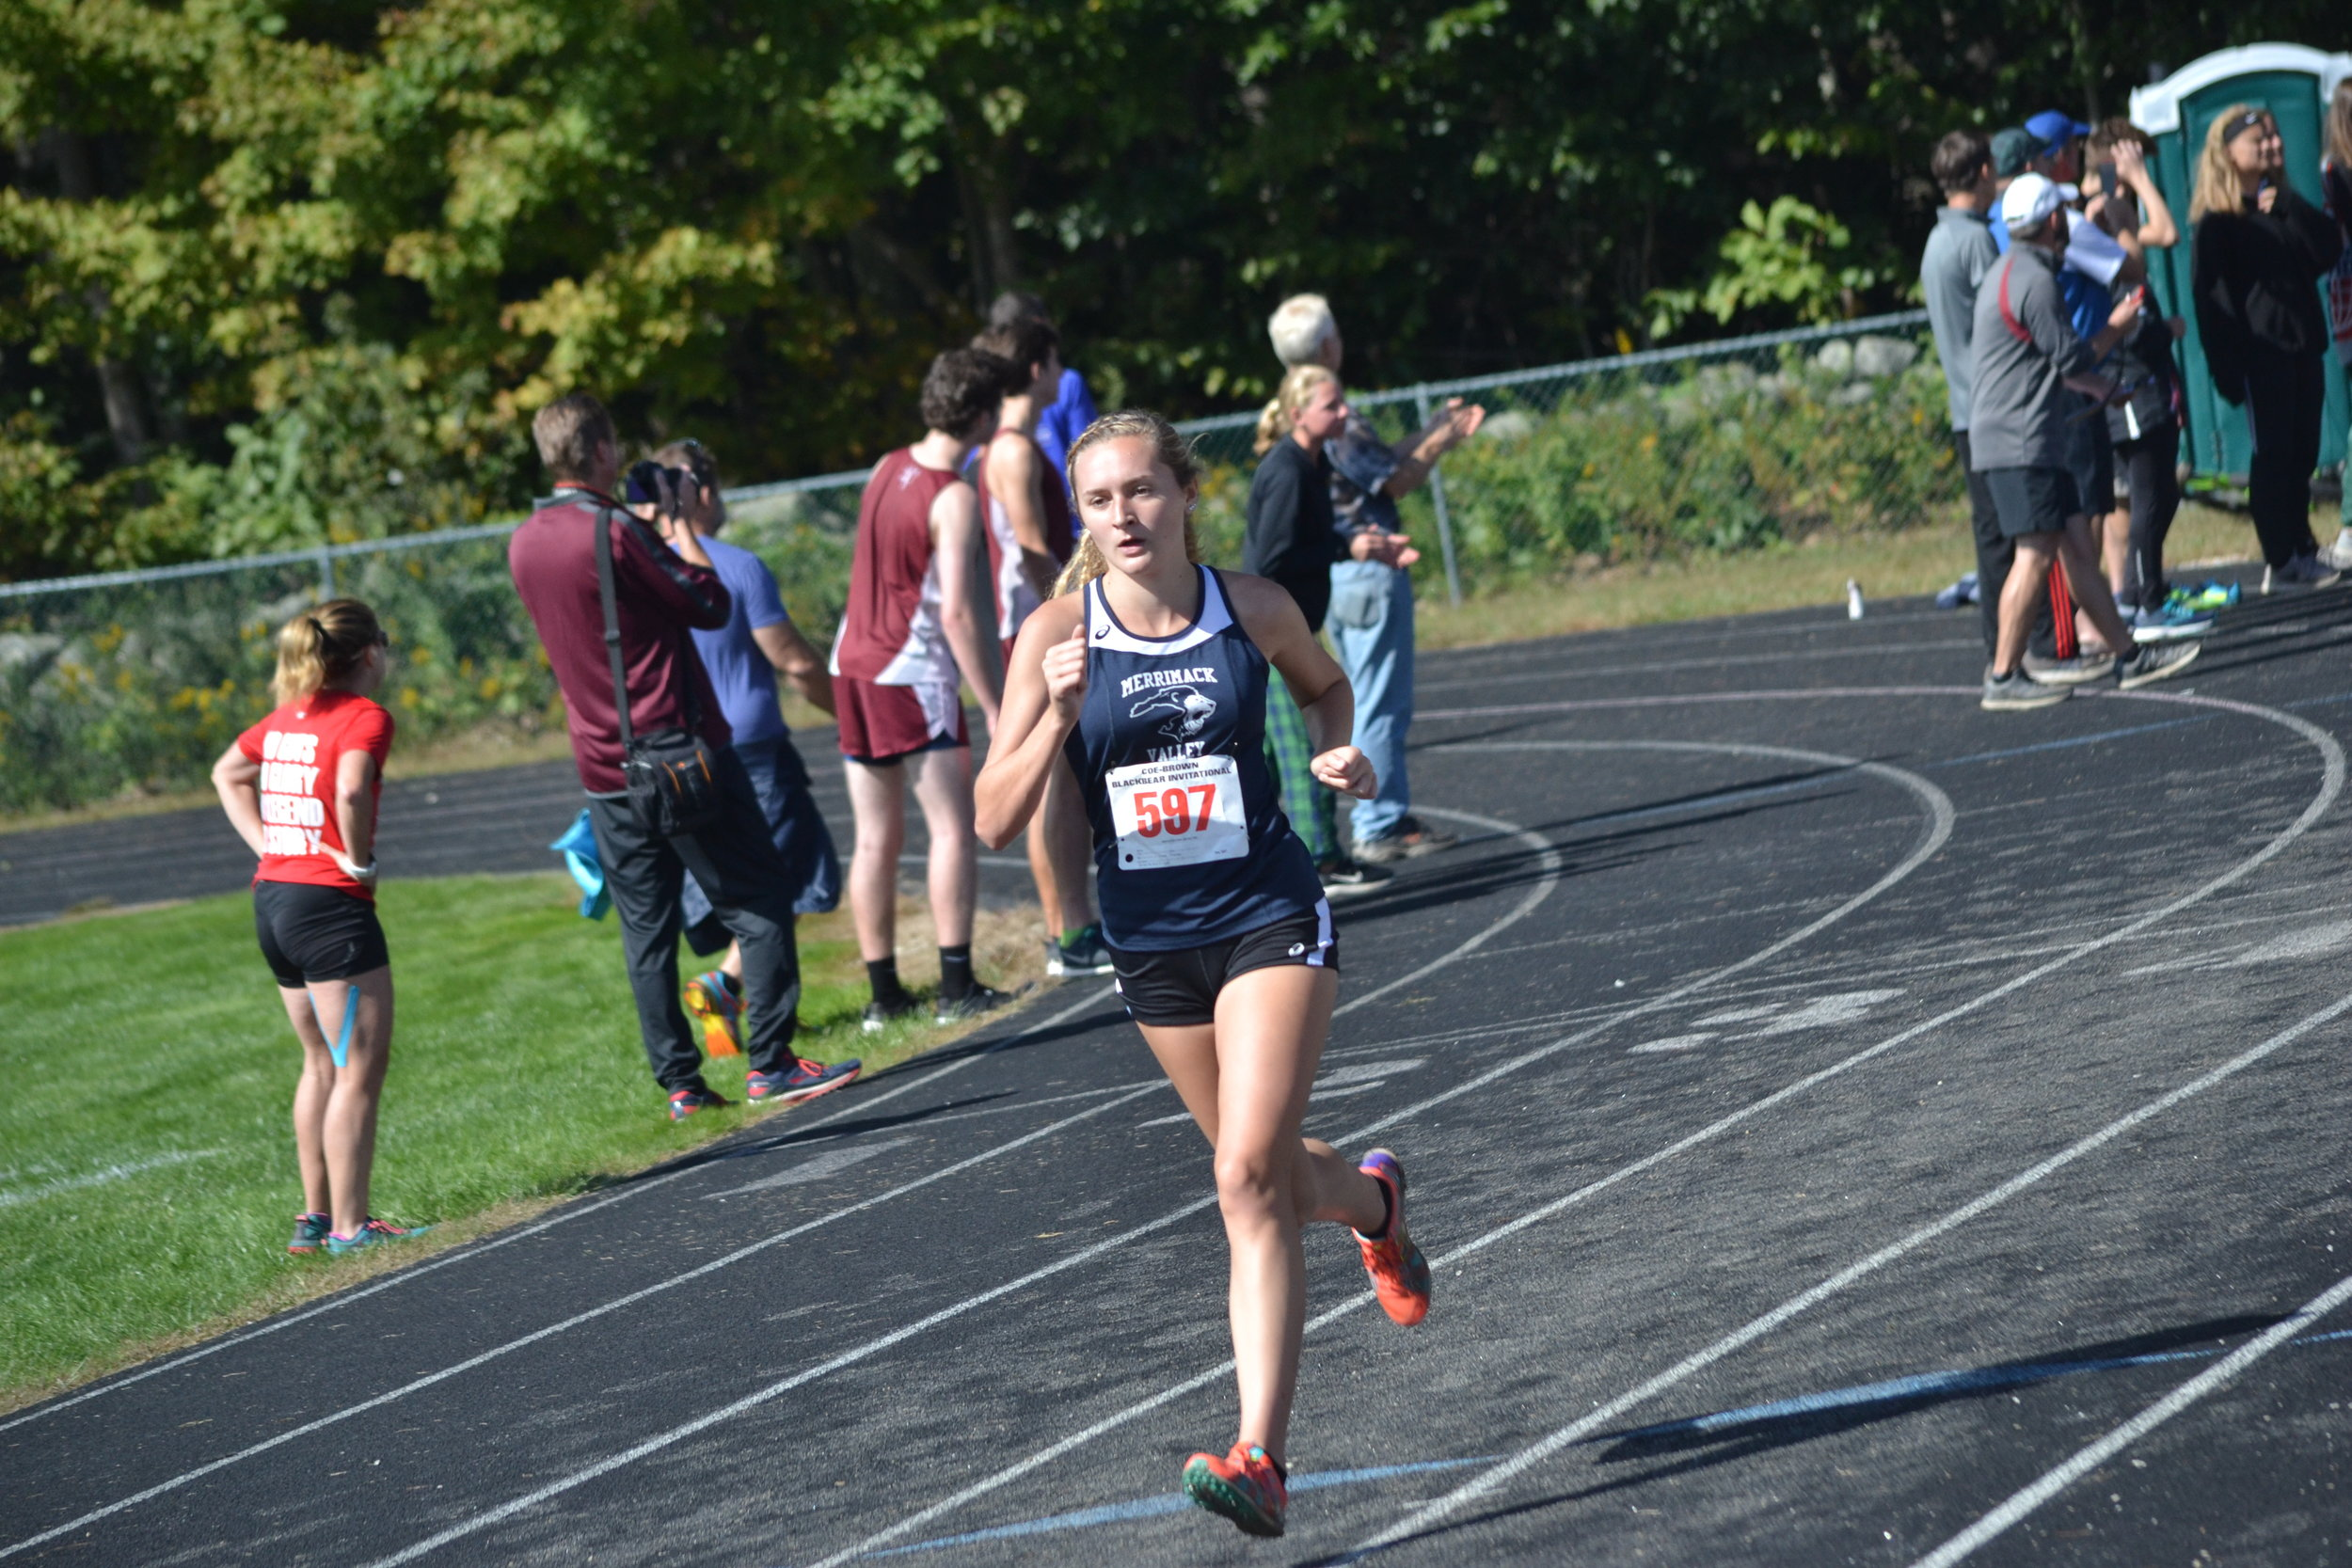 Maddy On Her Way to a PR